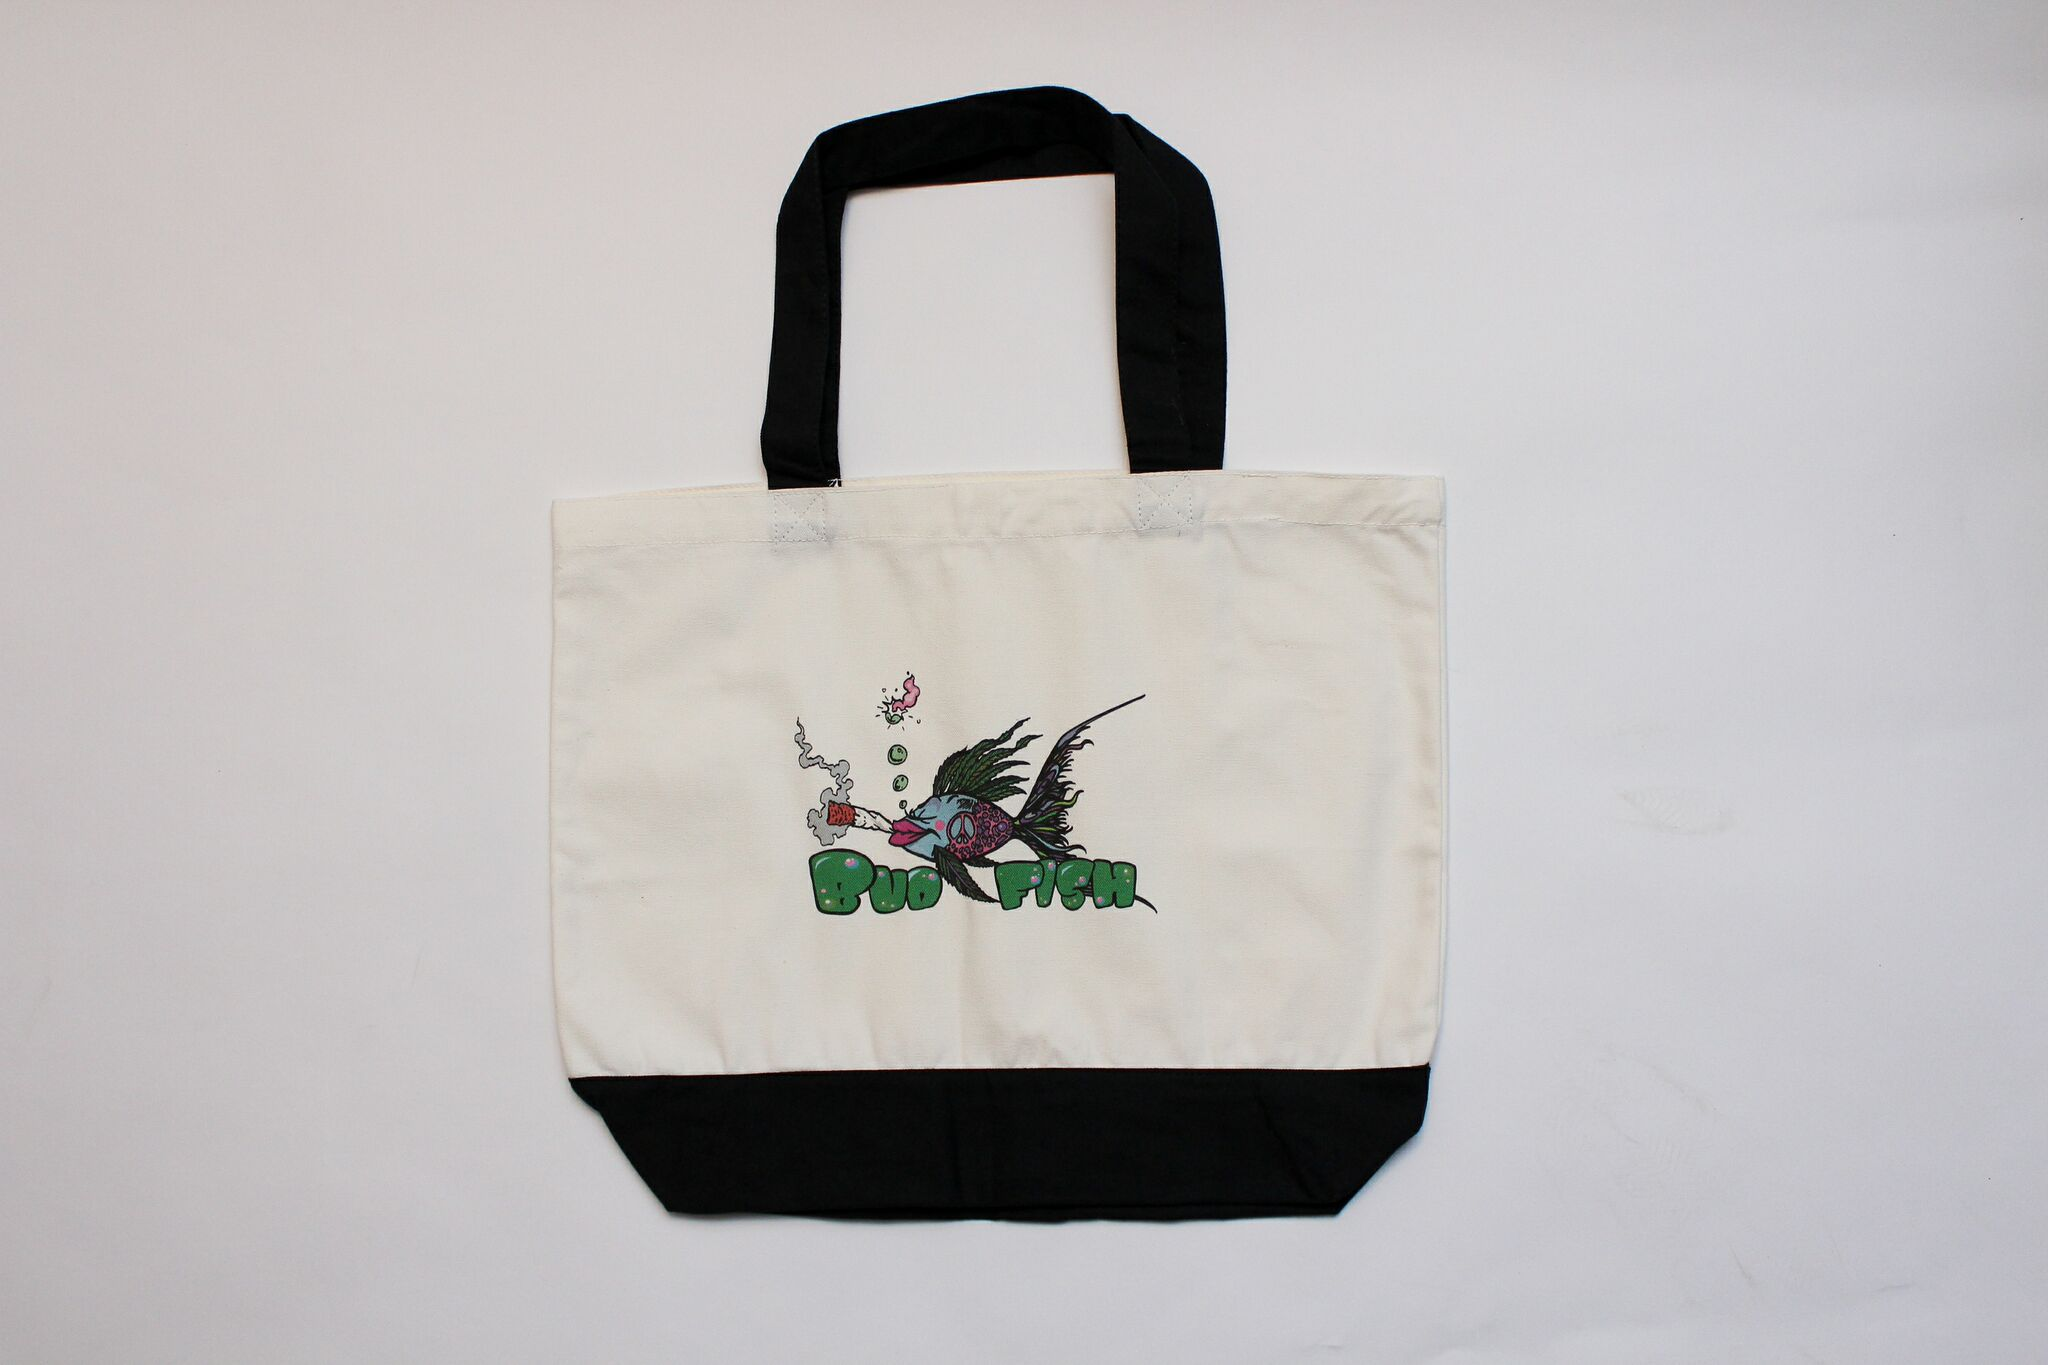 Mrs. Bud Fish Tote Bag